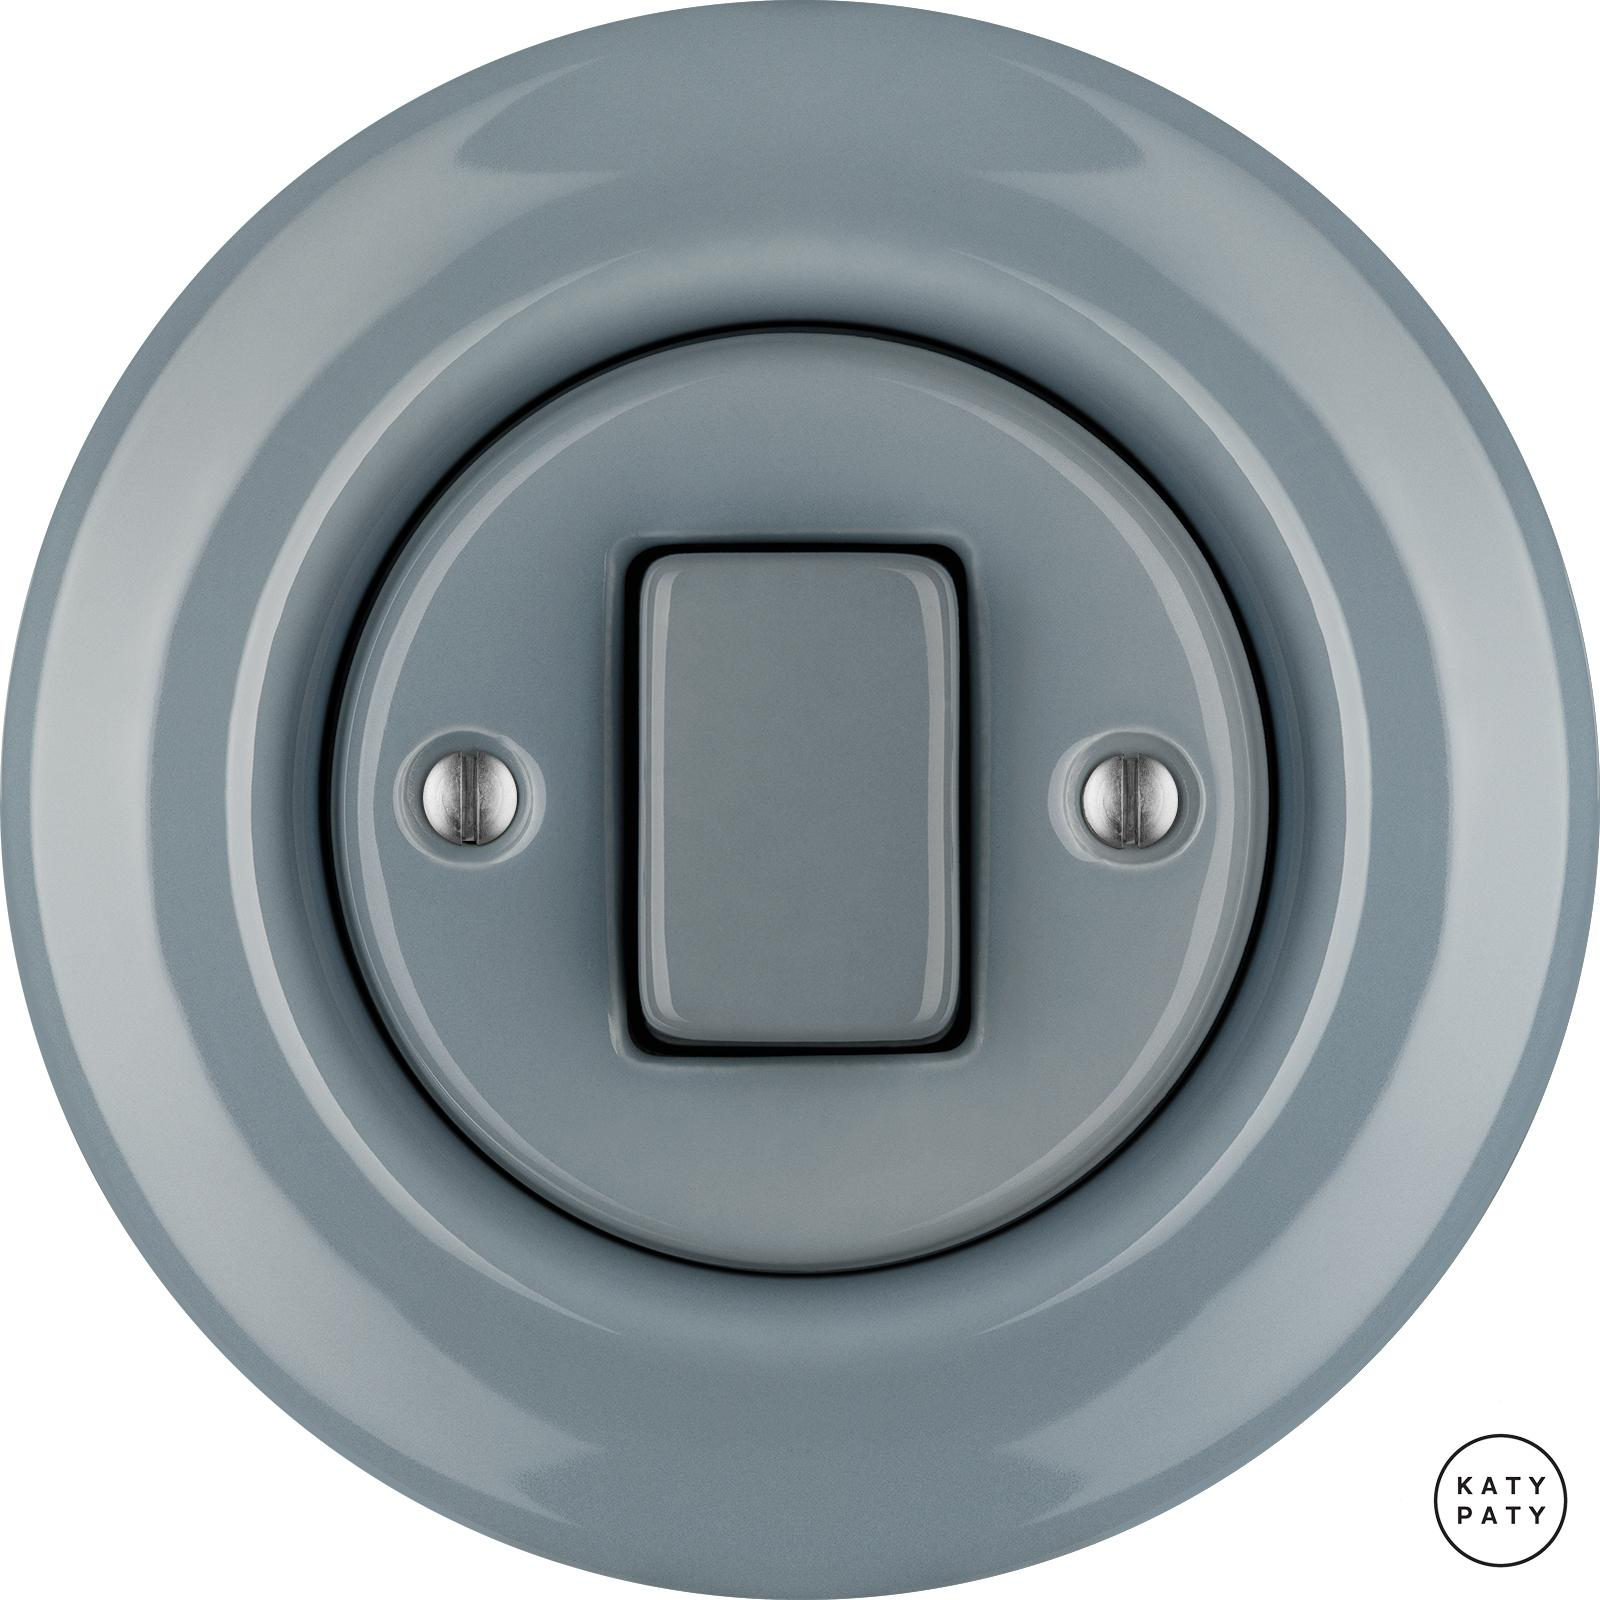 Porcelain switches - 1 key - FAT ()  - LIVOR | Katy Paty